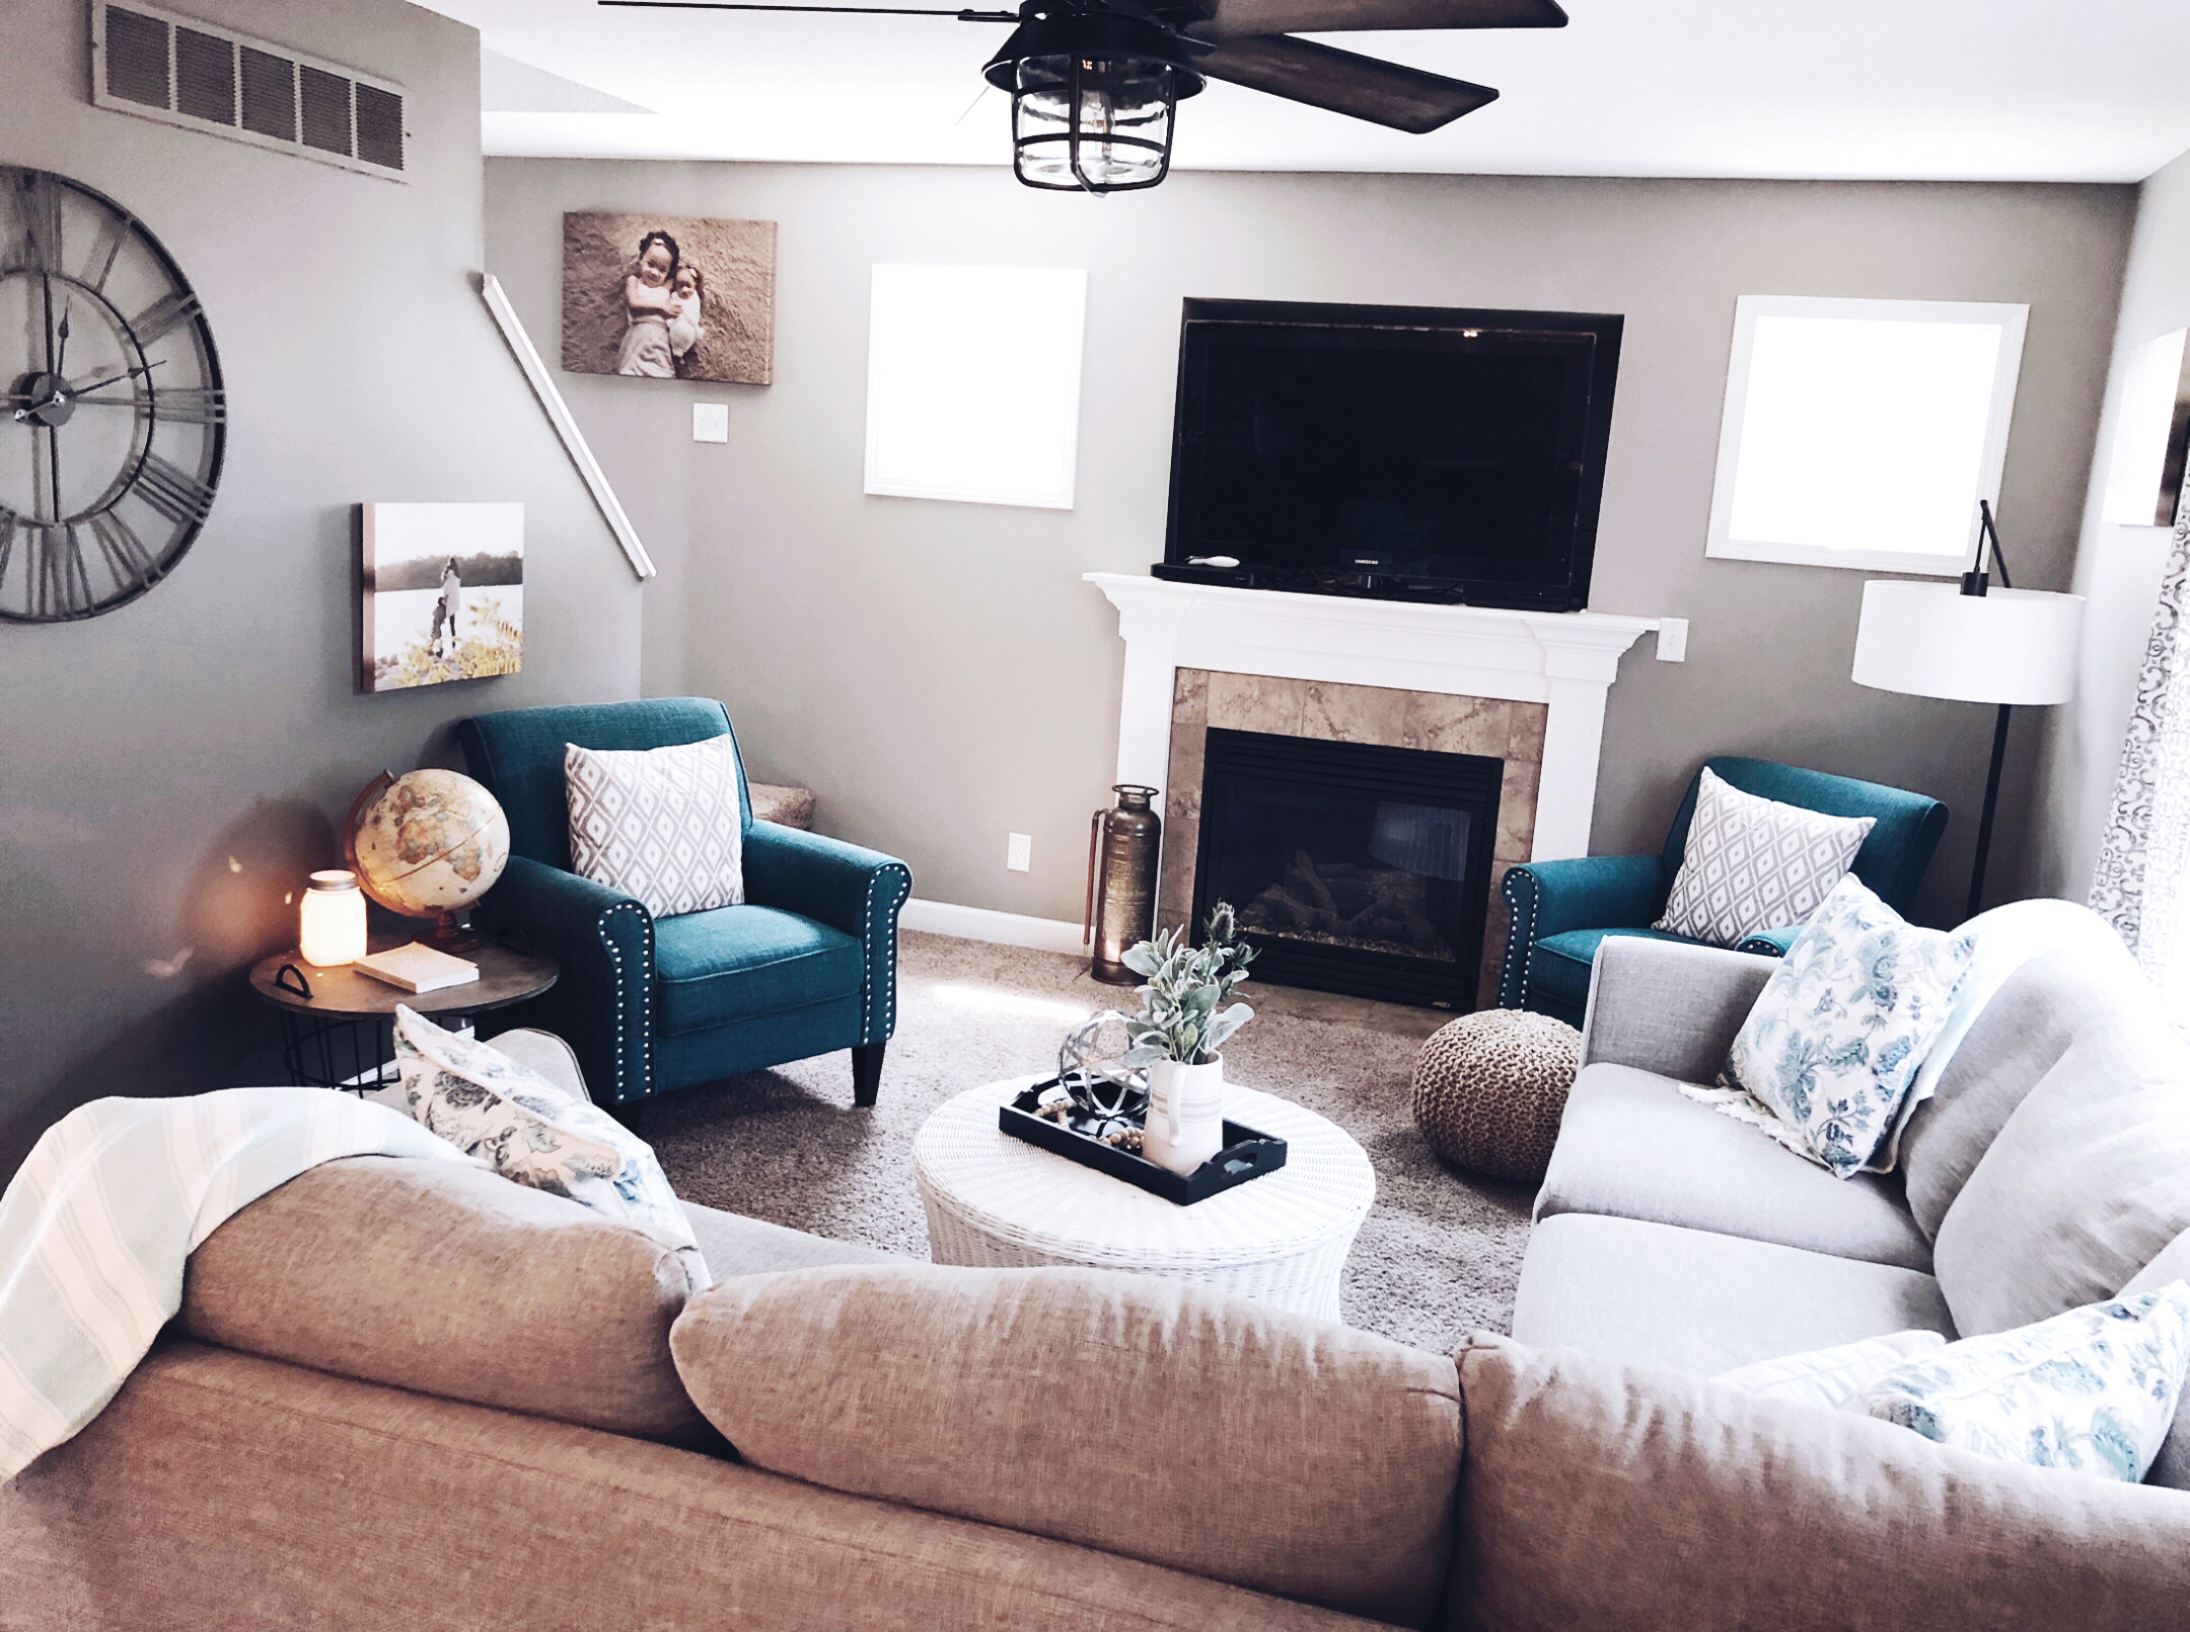 Is your house ready for some upgrades? I'm sharing some before + afters of a living room/dining room redo I worked on recently. | HPrallandCo.com